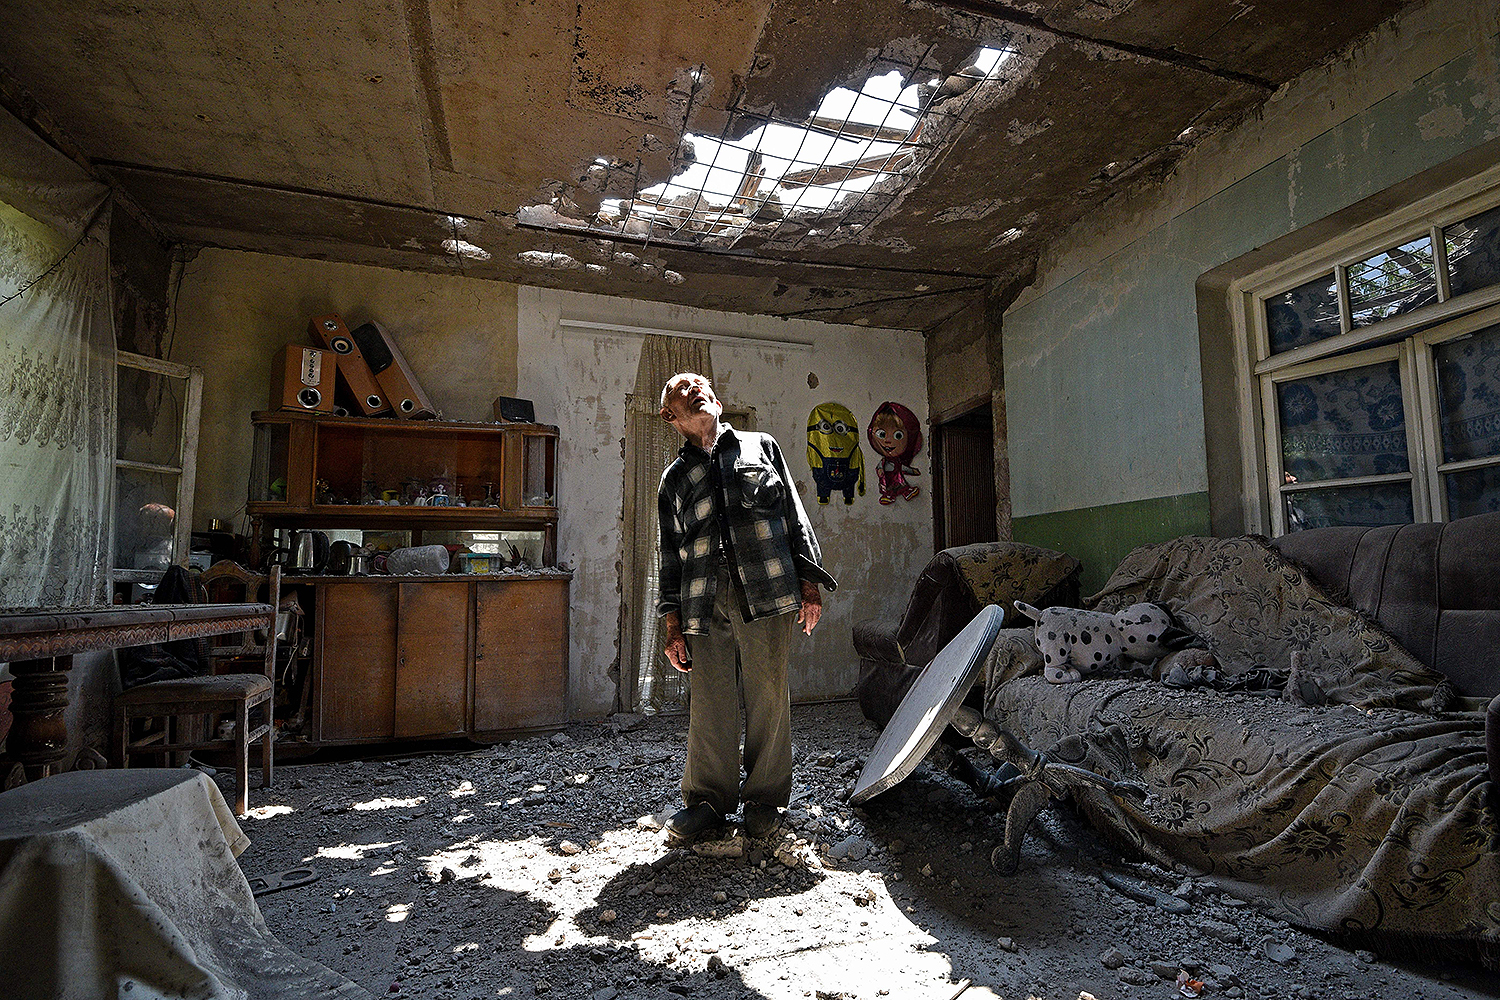 Aram Vardazaryan stands inside his home in the village of Aygepar, Armenia, on July 18 after it was hit by shelling during armed clashes on the Armenian-Azerbaijani border. Russia said it is prepared to mediate peace talks between ex-Soviet rivals Armenia and Azerbaijan after fighting escalated. KAREN MINASYAN/AFP via Getty Images